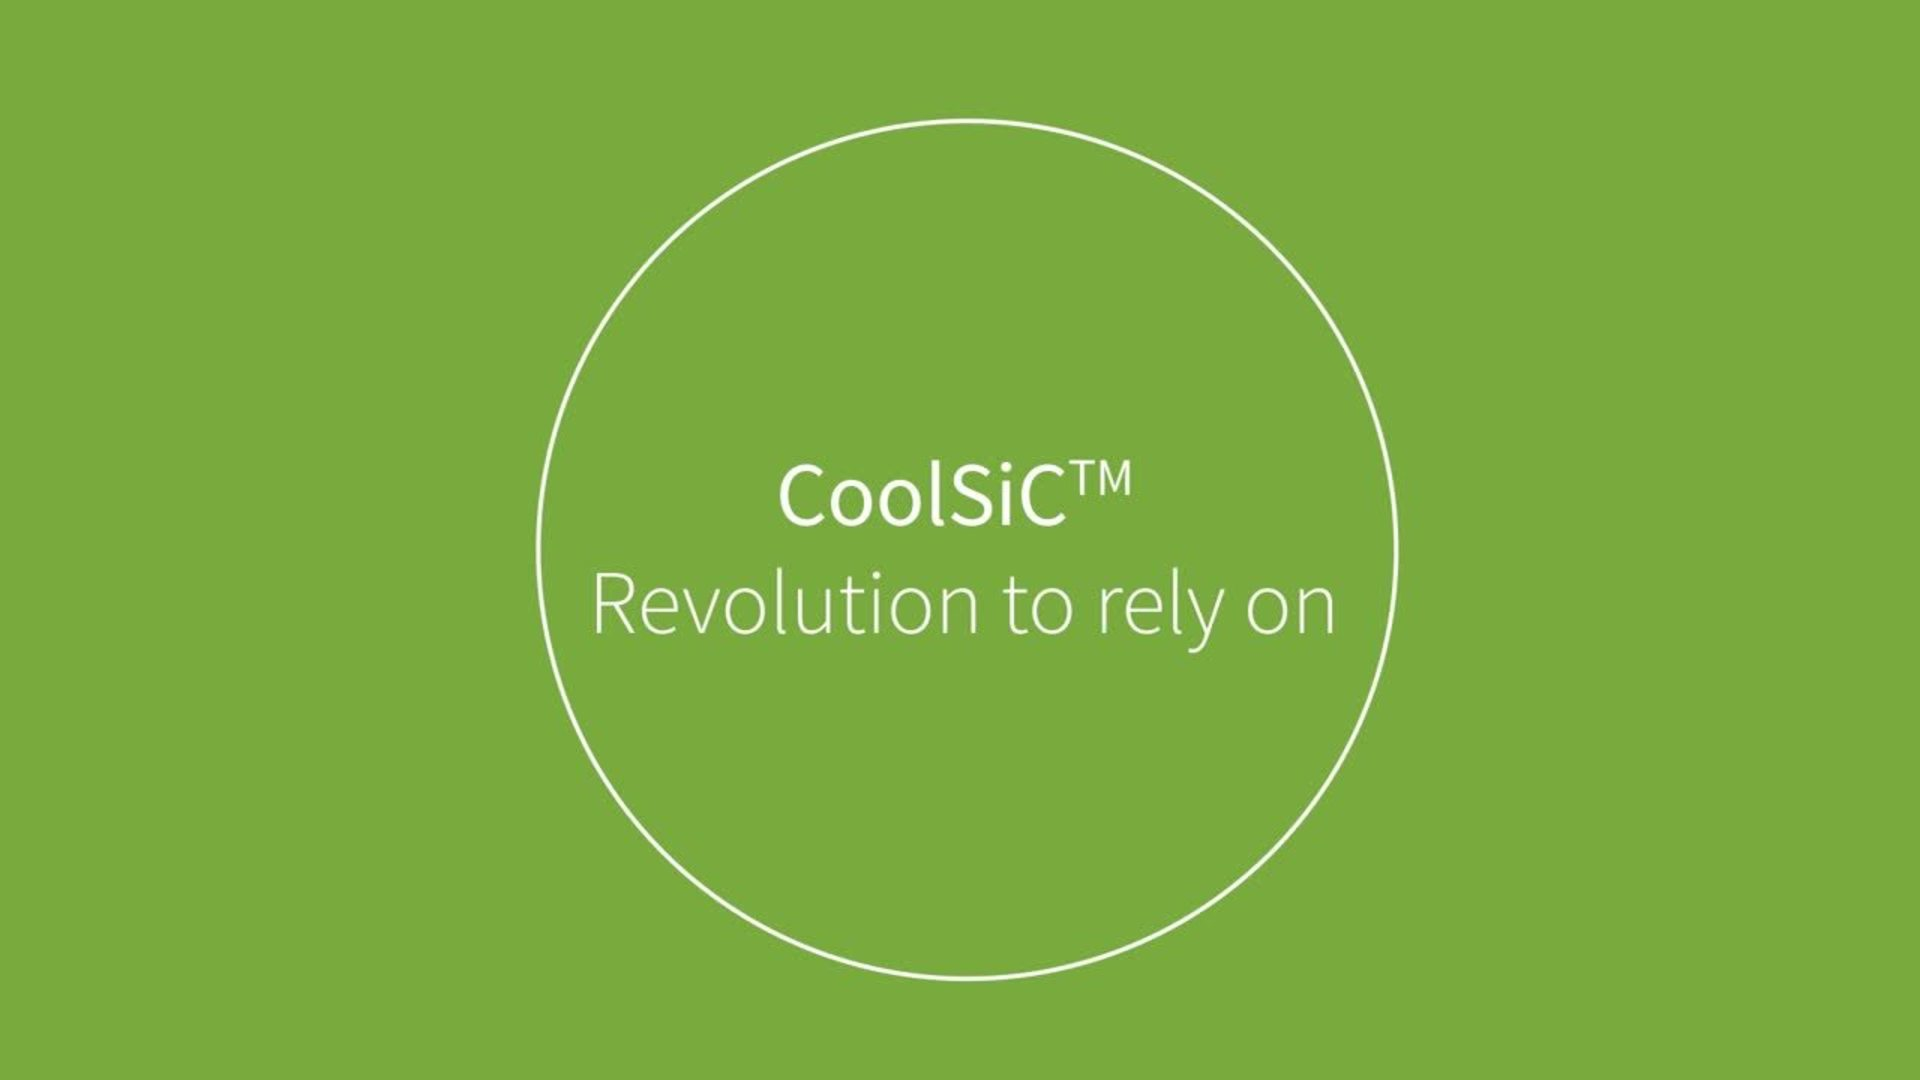 CoolSiC™ - Revolution to rely on video